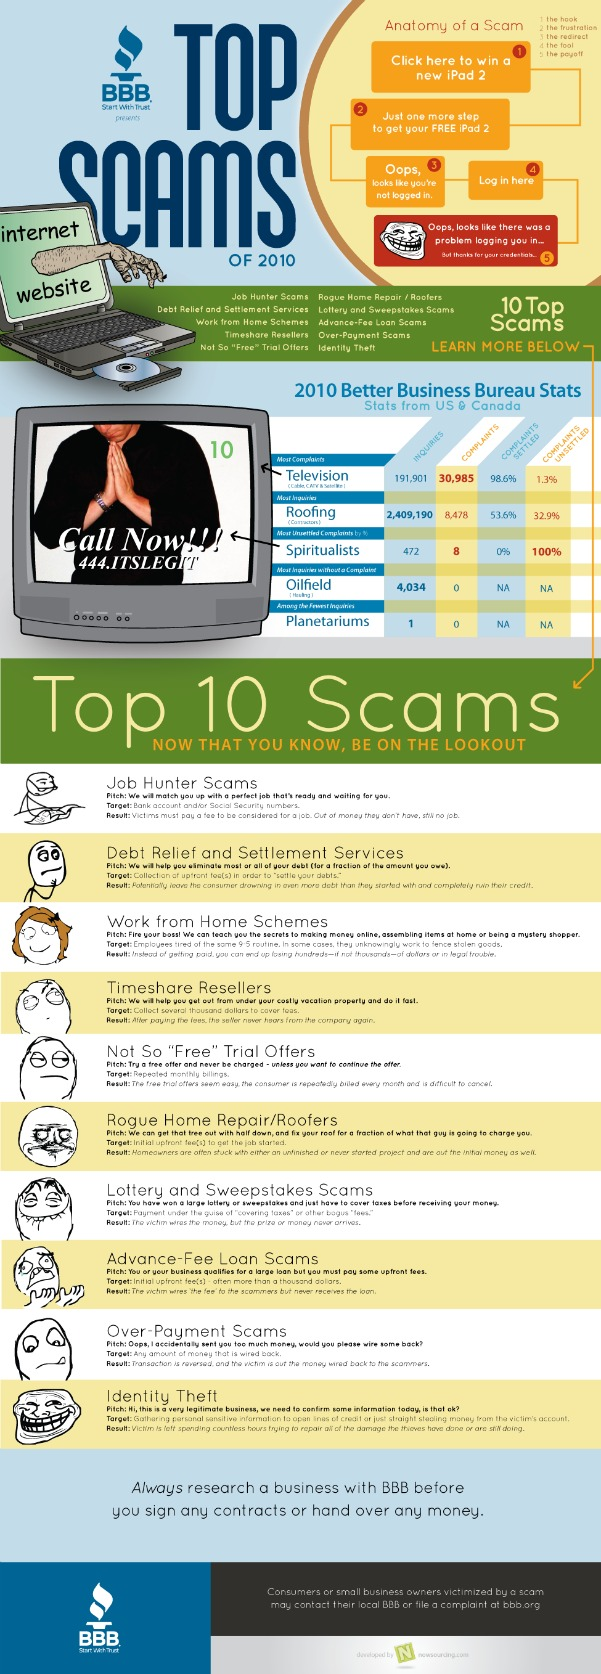 Top Online Scams Infographic